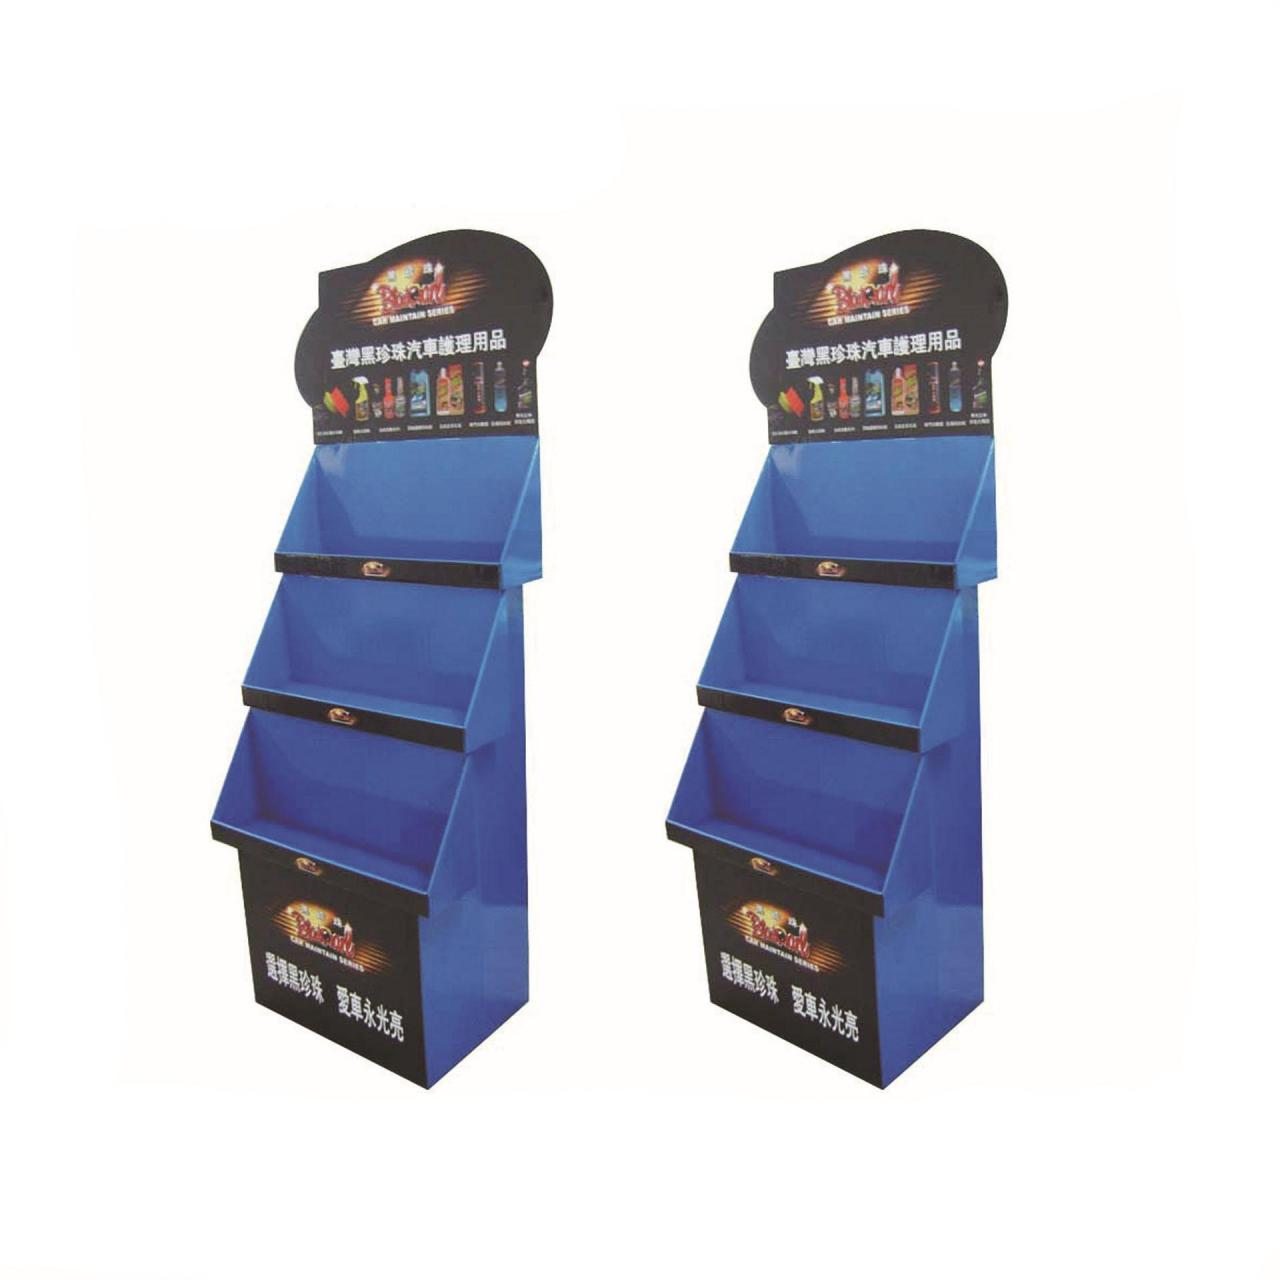 Small bear hot sale cardboard advertising book display stands or shelf Manufactures